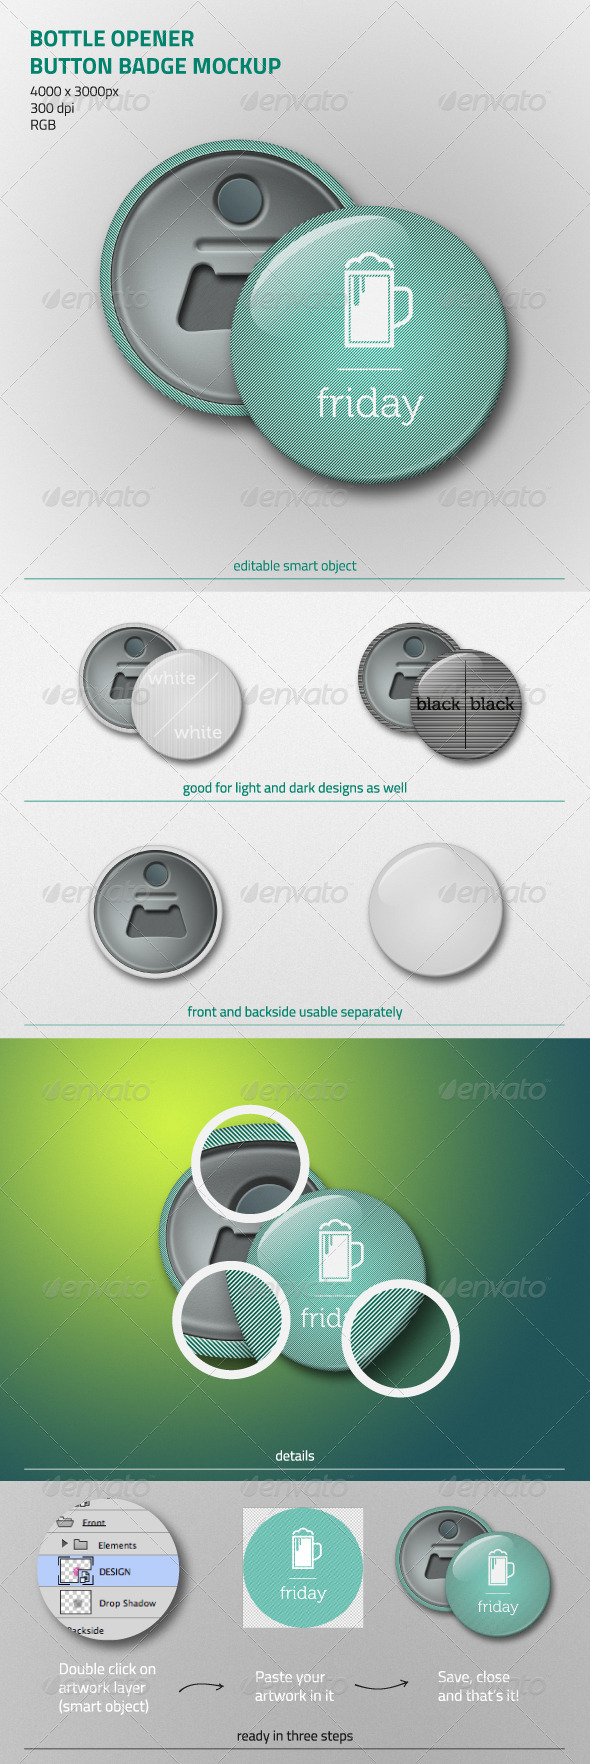 Bottle Opener Button Badge Mockup - Miscellaneous Print